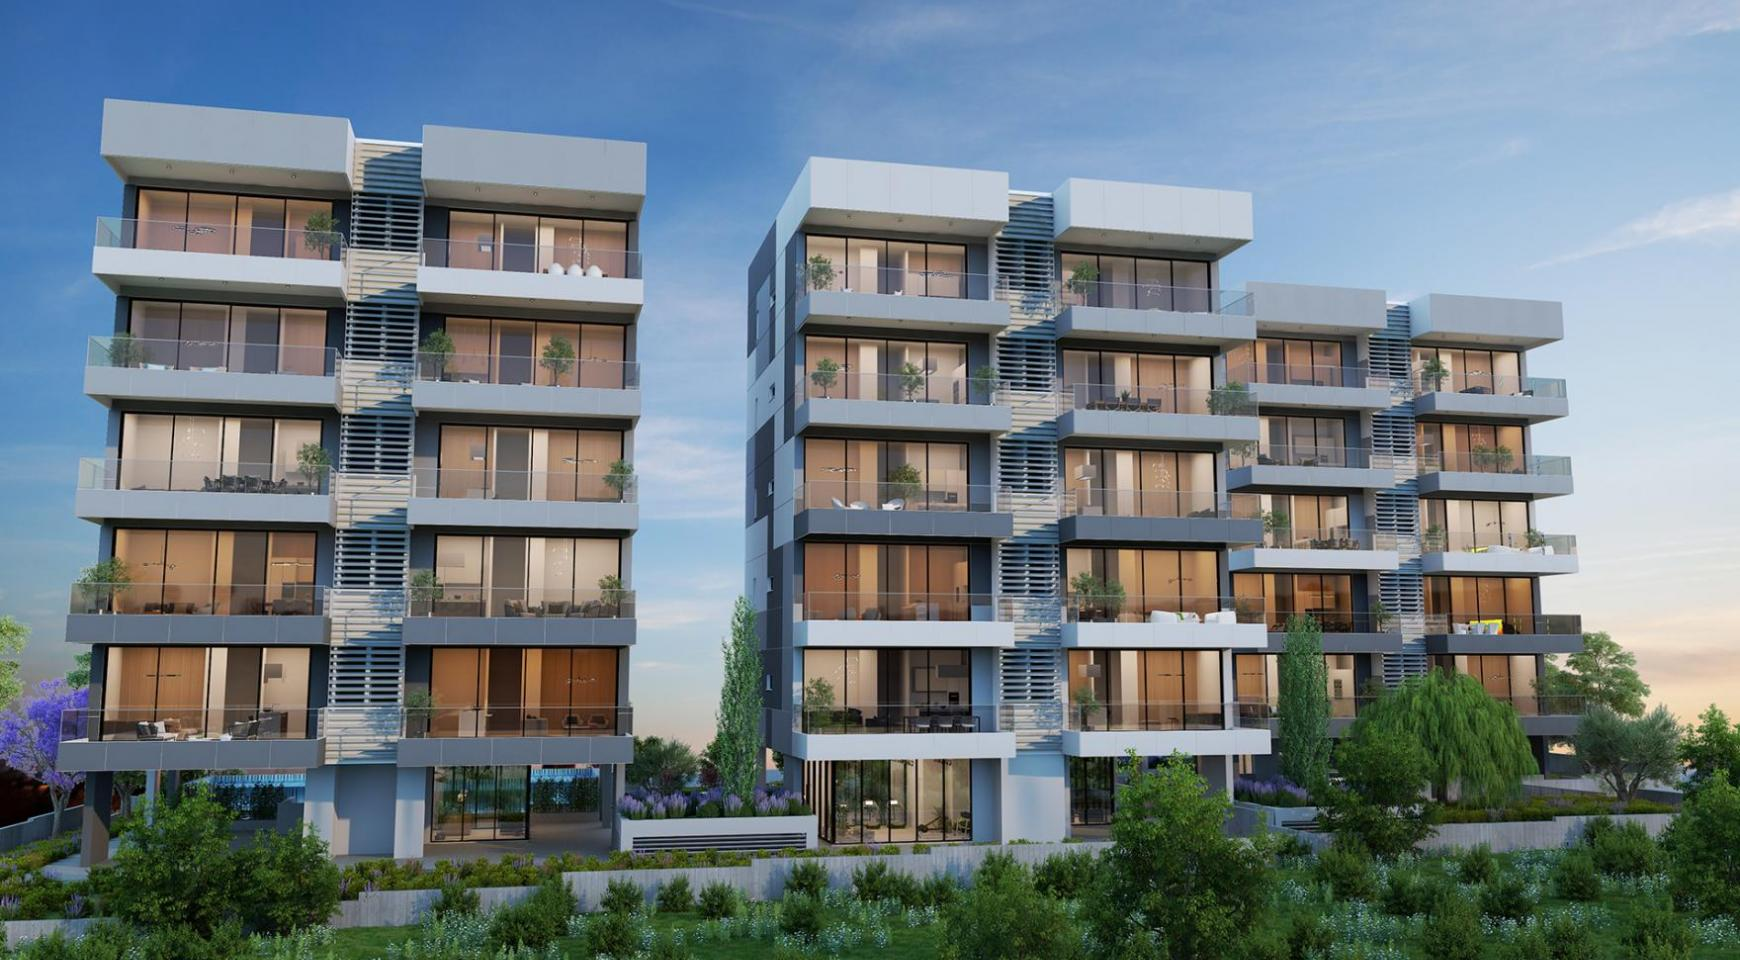 Urban City Residences, Block B. New Spacious 3 Bedroom Apartment 301 in the City Centre - 23